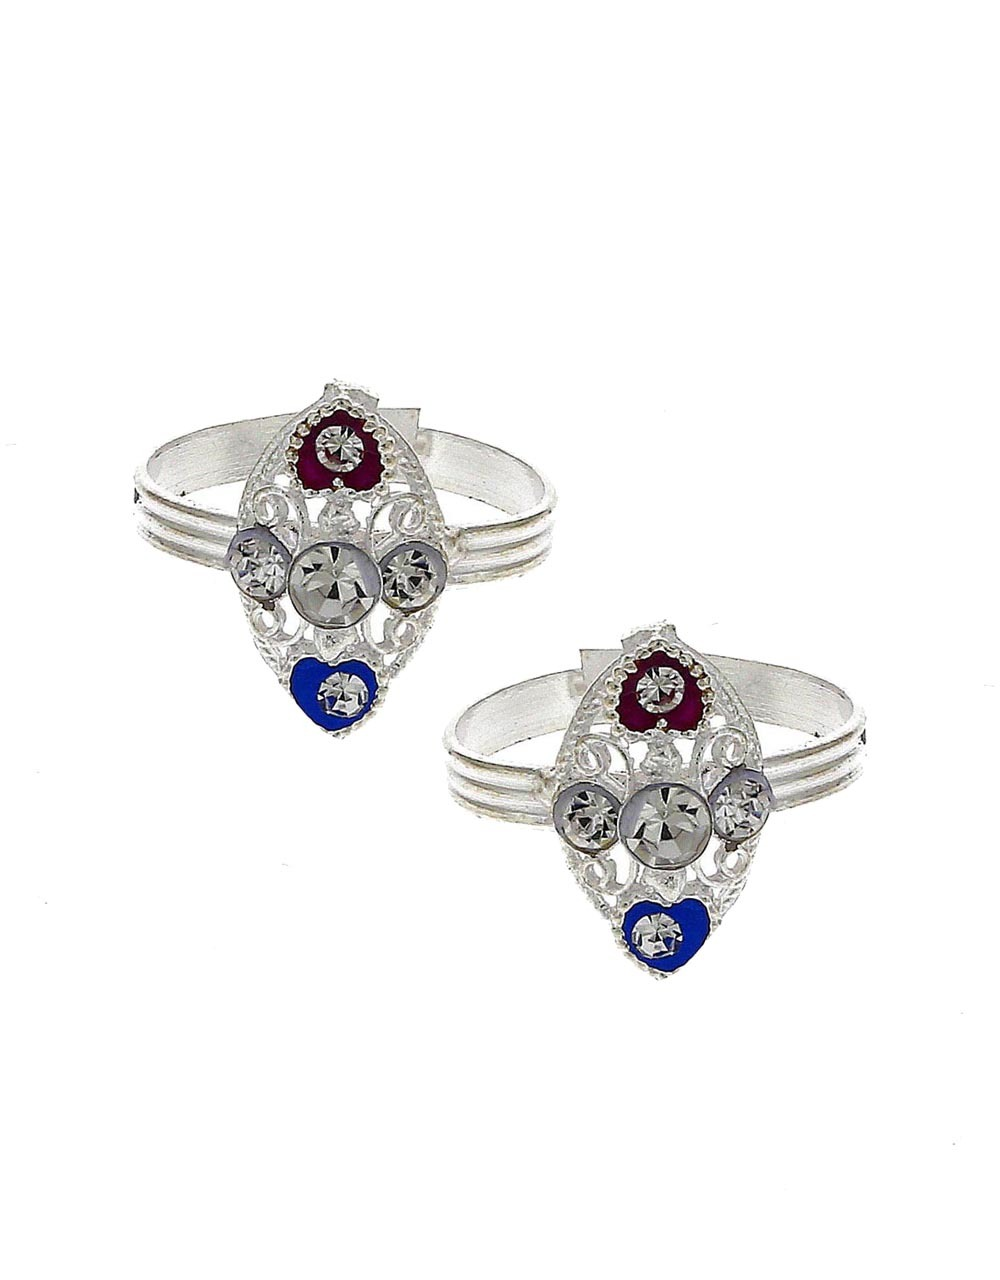 Attractive blue and red stone silver finish bichhudi for woman